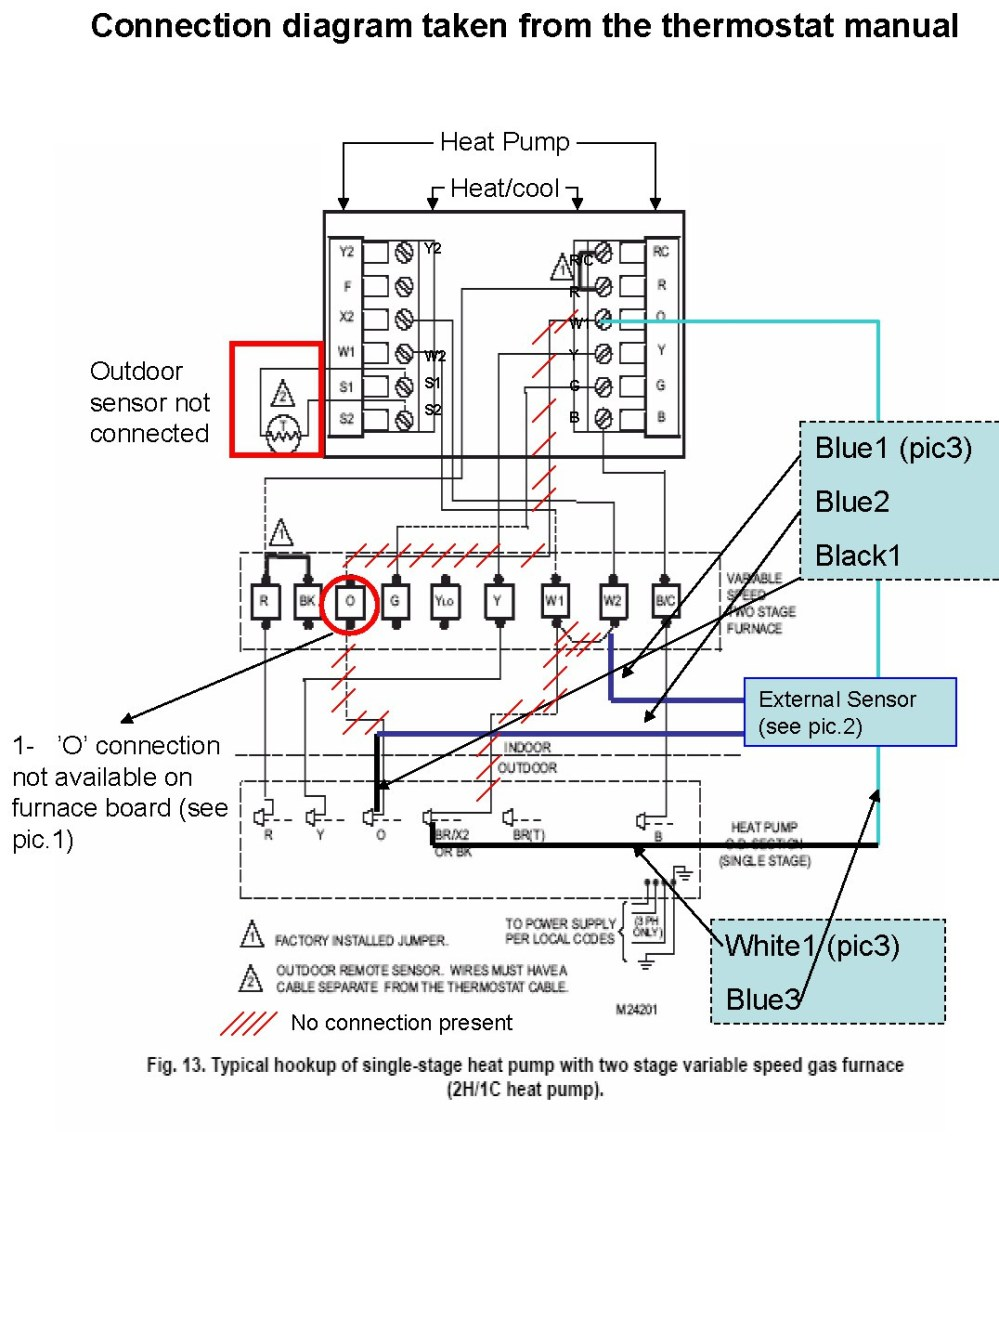 medium resolution of single stage thermostat wiring diagram collection trane thermostat wiring diagram lovely home heater thermostat wiring download wiring diagram